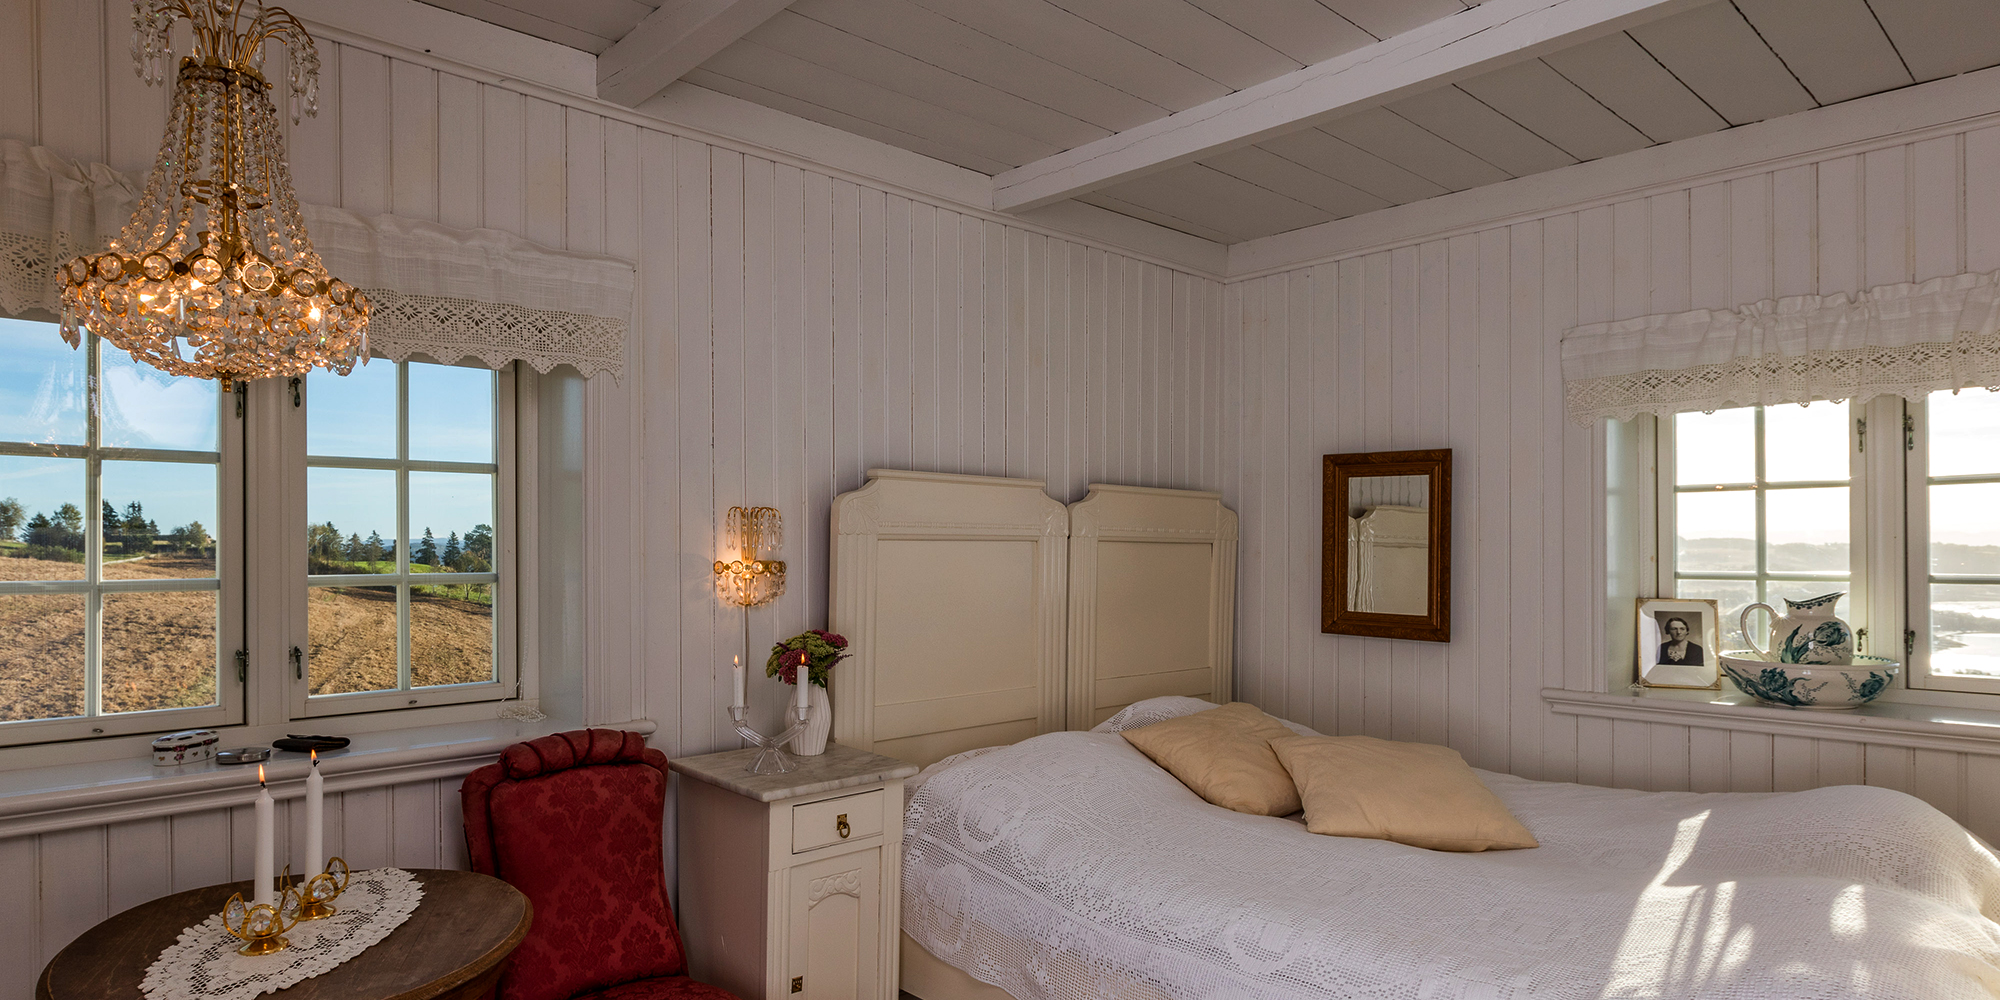 Husfrua country farm hotel - one of the rooms. Copyright: Husfrua Gårdshotell